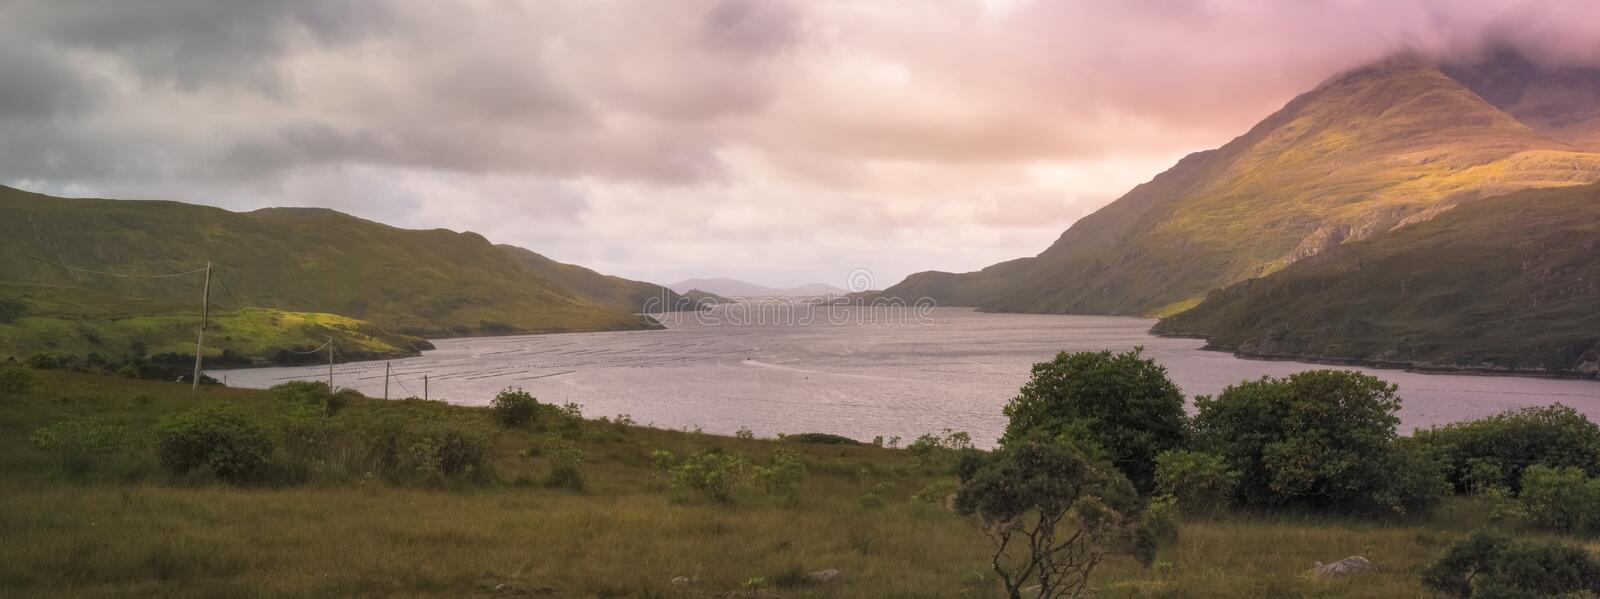 Landscape of Killary Harbour, fjord in Connemara, located in the west coast of Ireland royalty free stock image